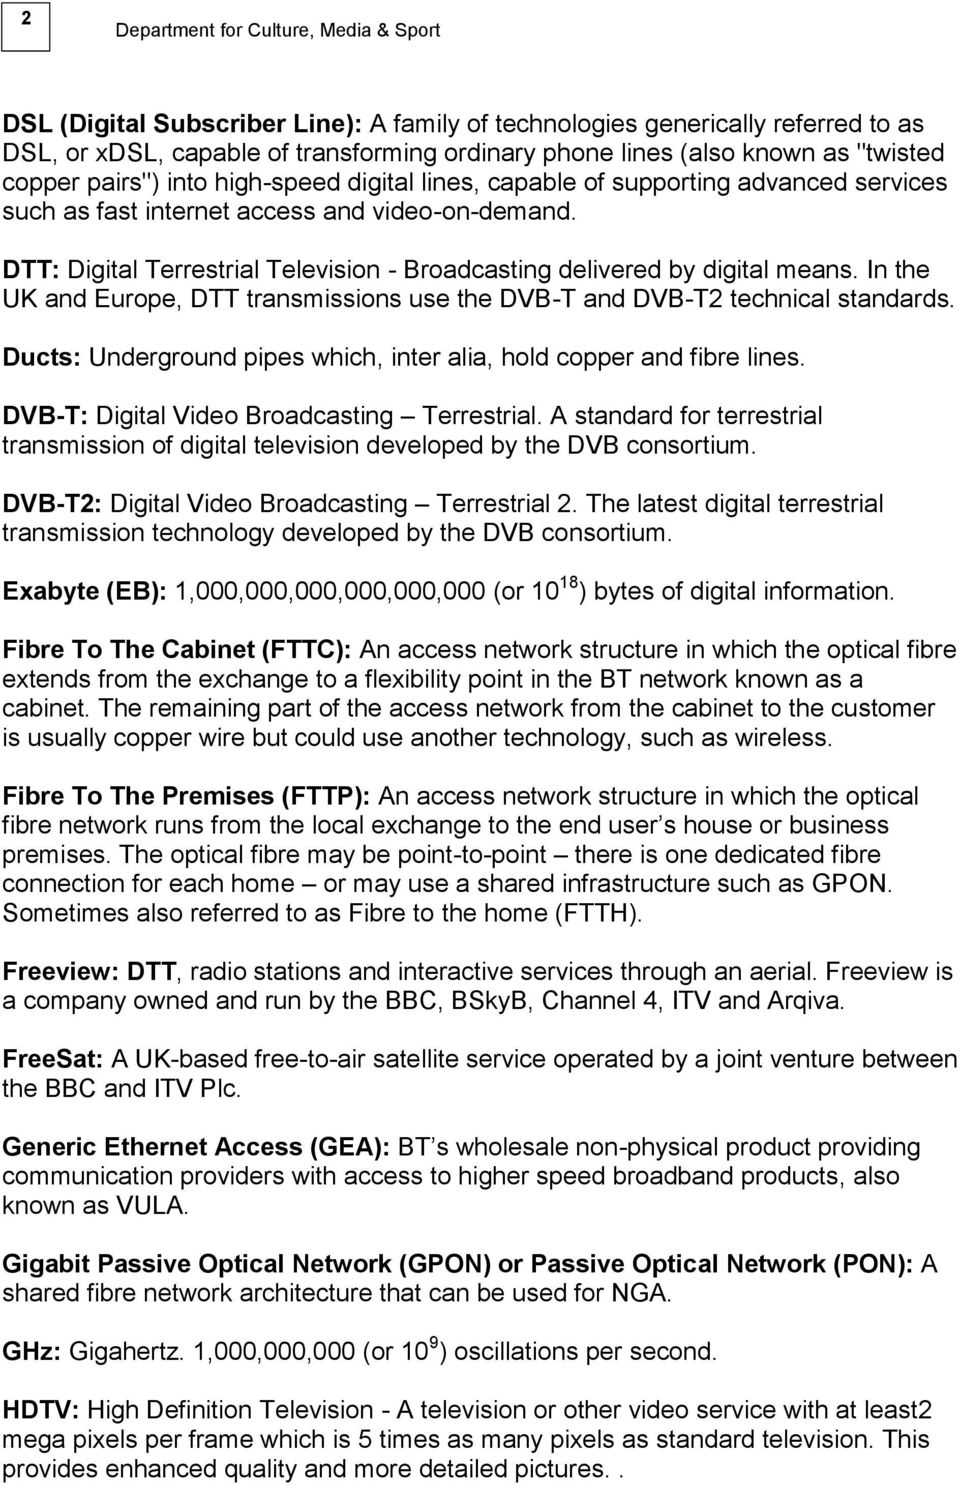 DTT: Digital Terrestrial Television - Broadcasting delivered by digital means. In the UK and Europe, DTT transmissions use the DVB-T and DVB-T2 technical standards.